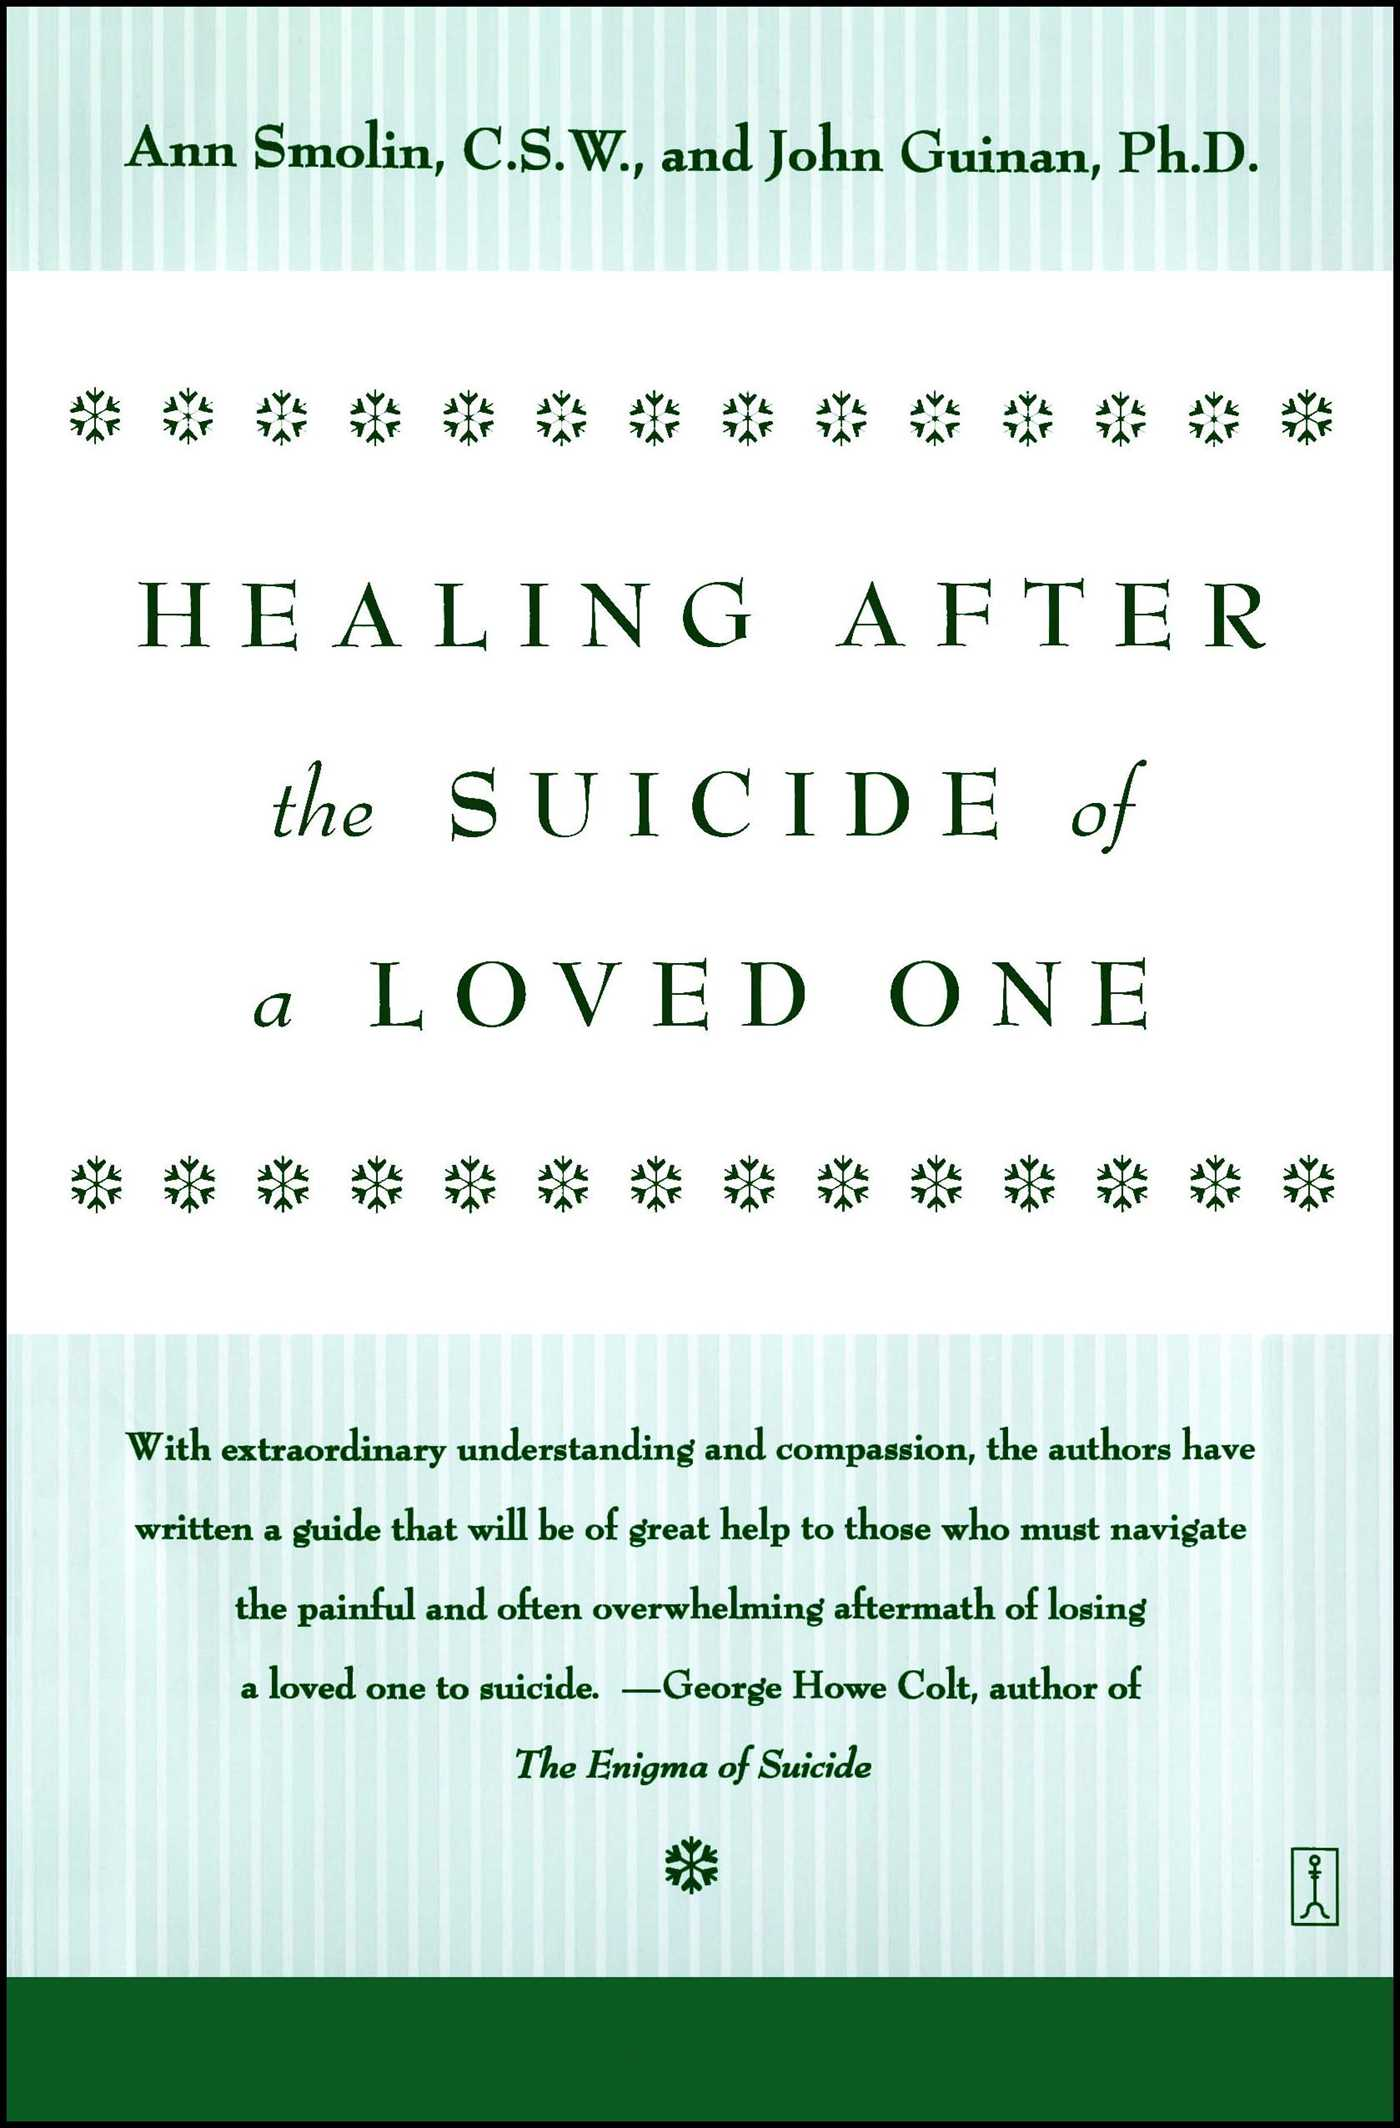 Healing-after-the-suicide-of-a-loved-one-9781439123980_hr